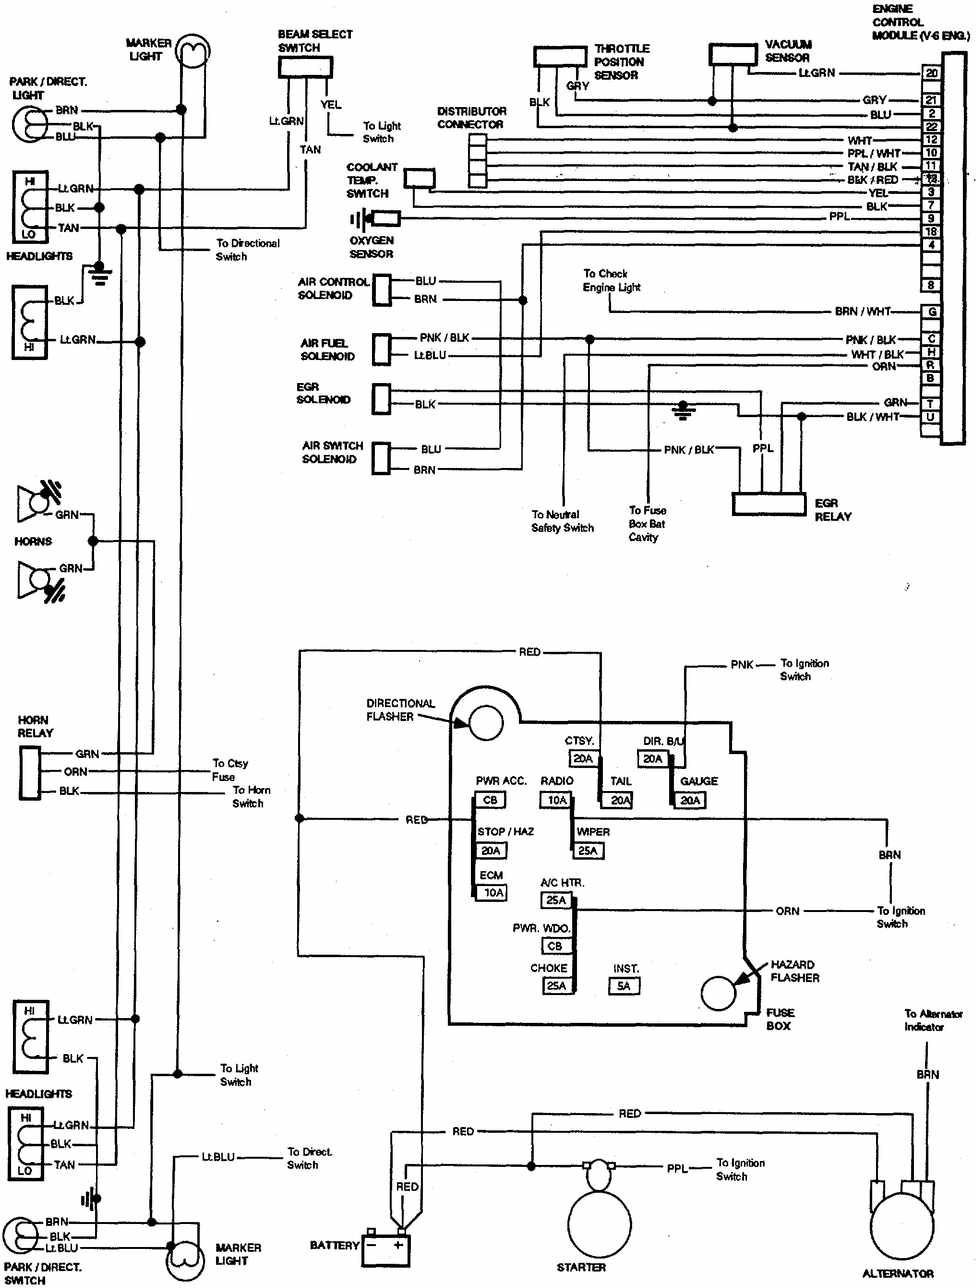 herein we can see the 1981 1987 chevrolet v8 trucks electrical wiring diagram description from diagramonwiring blogspot ca  [ 976 x 1288 Pixel ]